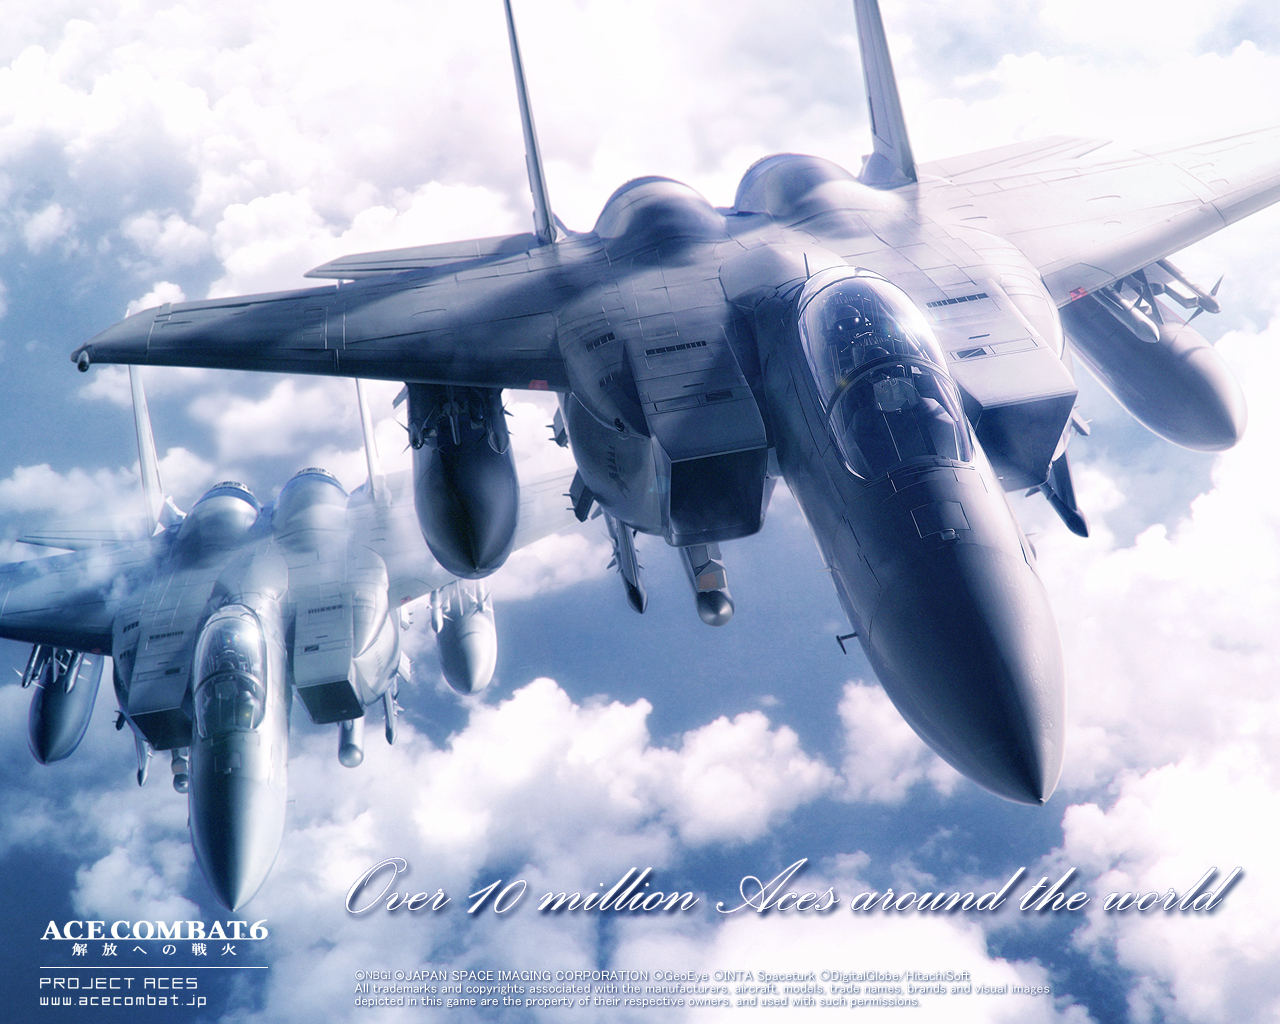 ace combat video game HD Wallpaper